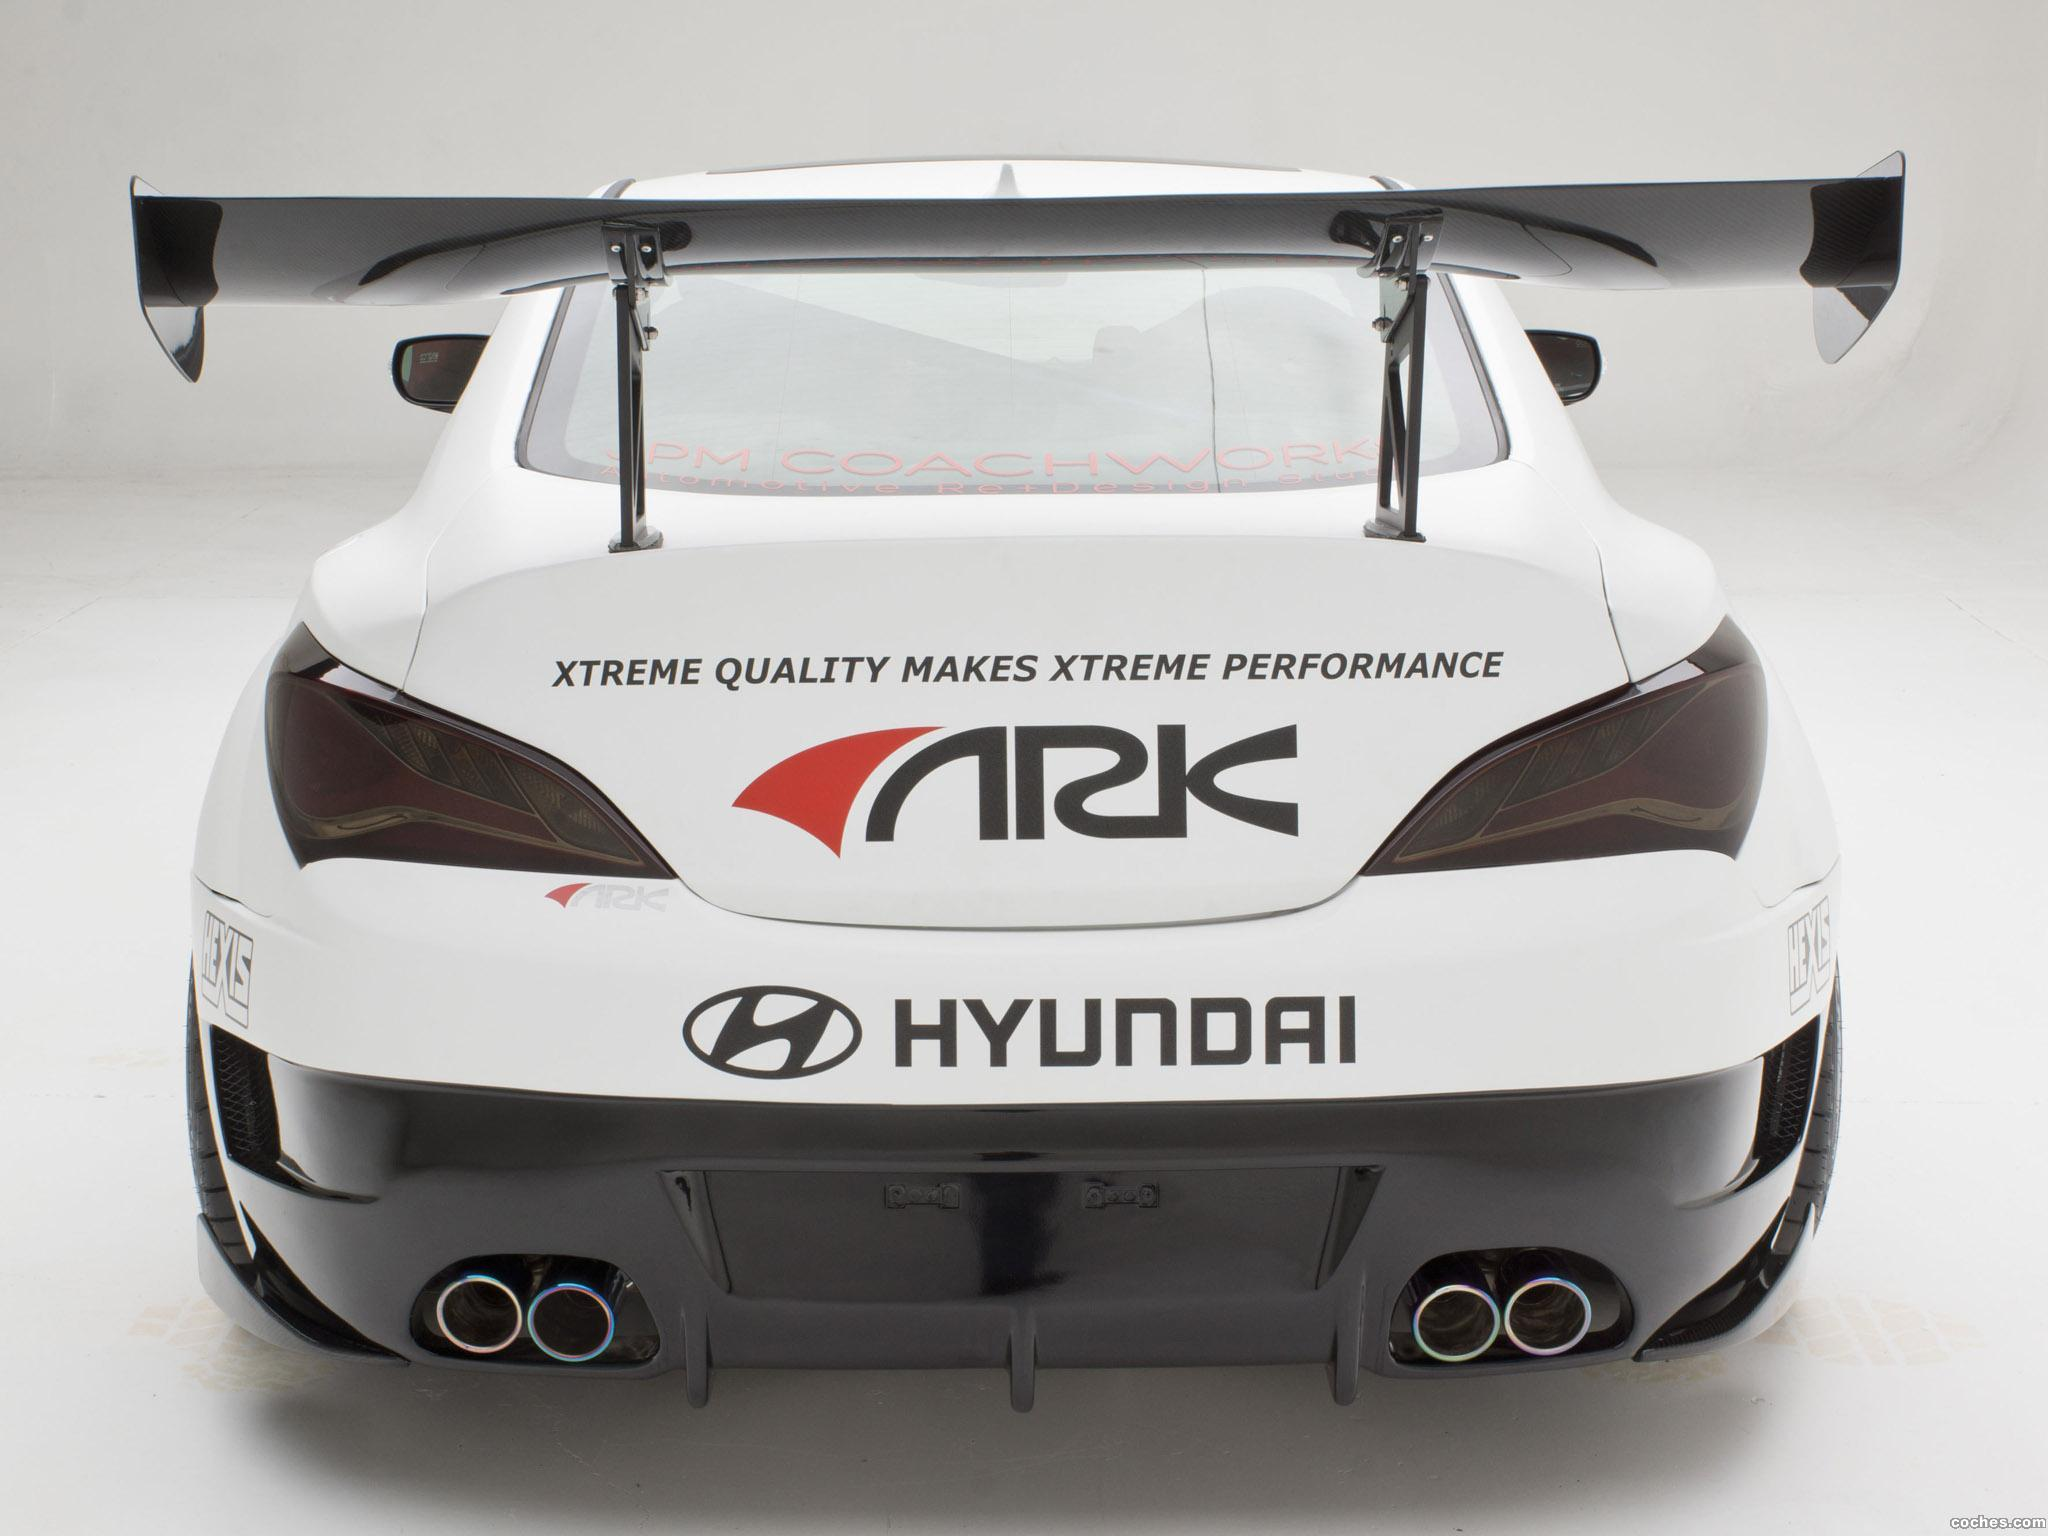 Foto 4 de Hyundai Genesis Coupe R-Spec Track Edition ARK Performance 2012